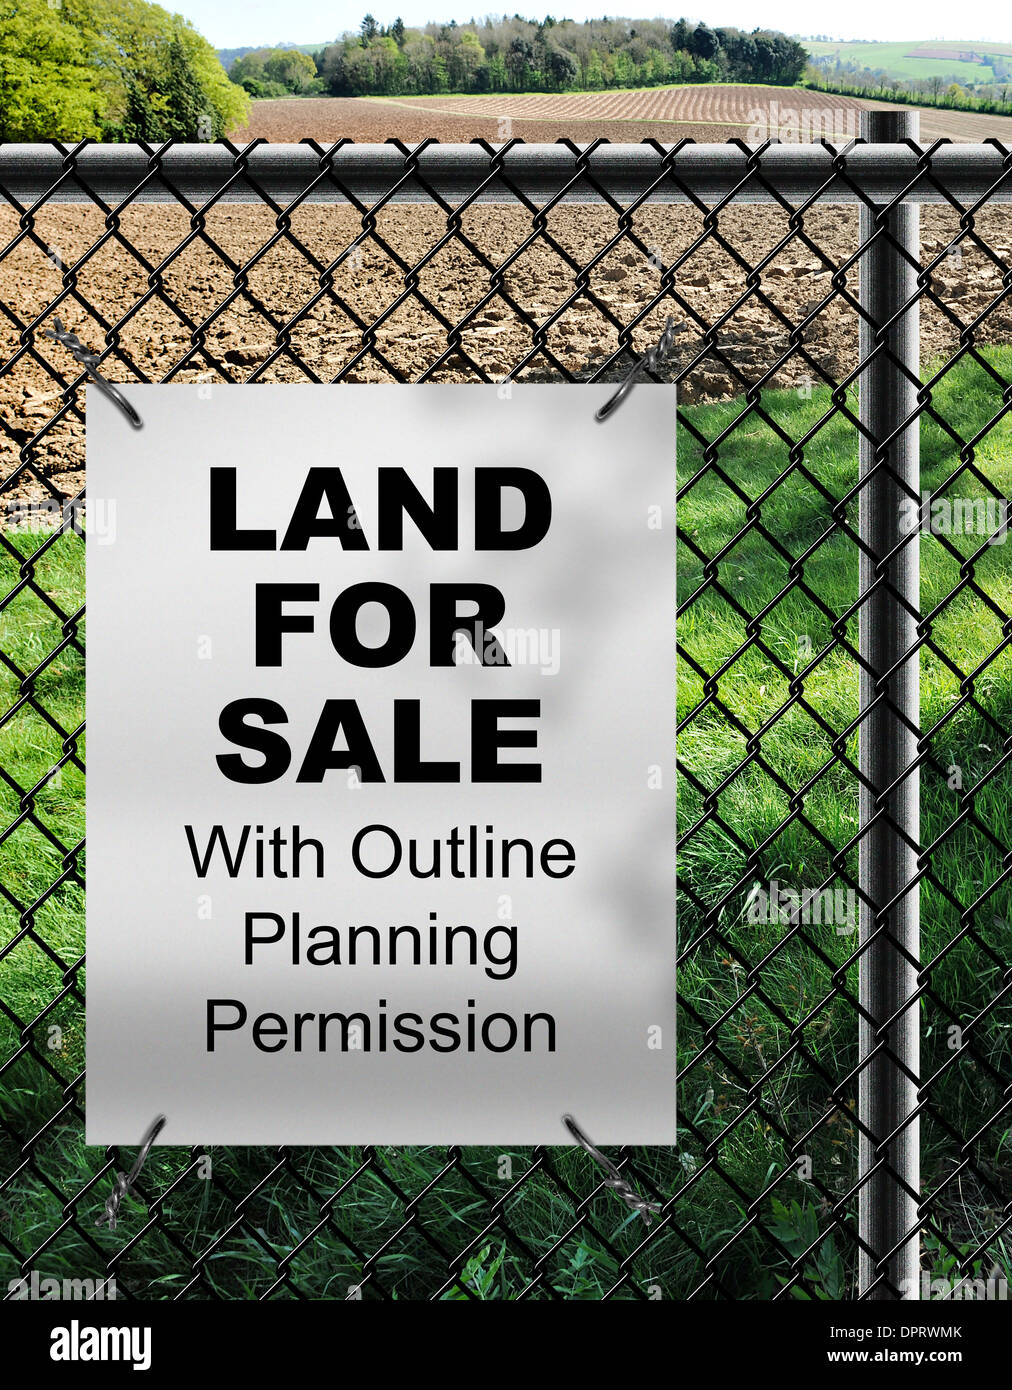 Wire Fence For Sale | Land For Sale By With Outline Planning Permission Sign Fixed On Wire